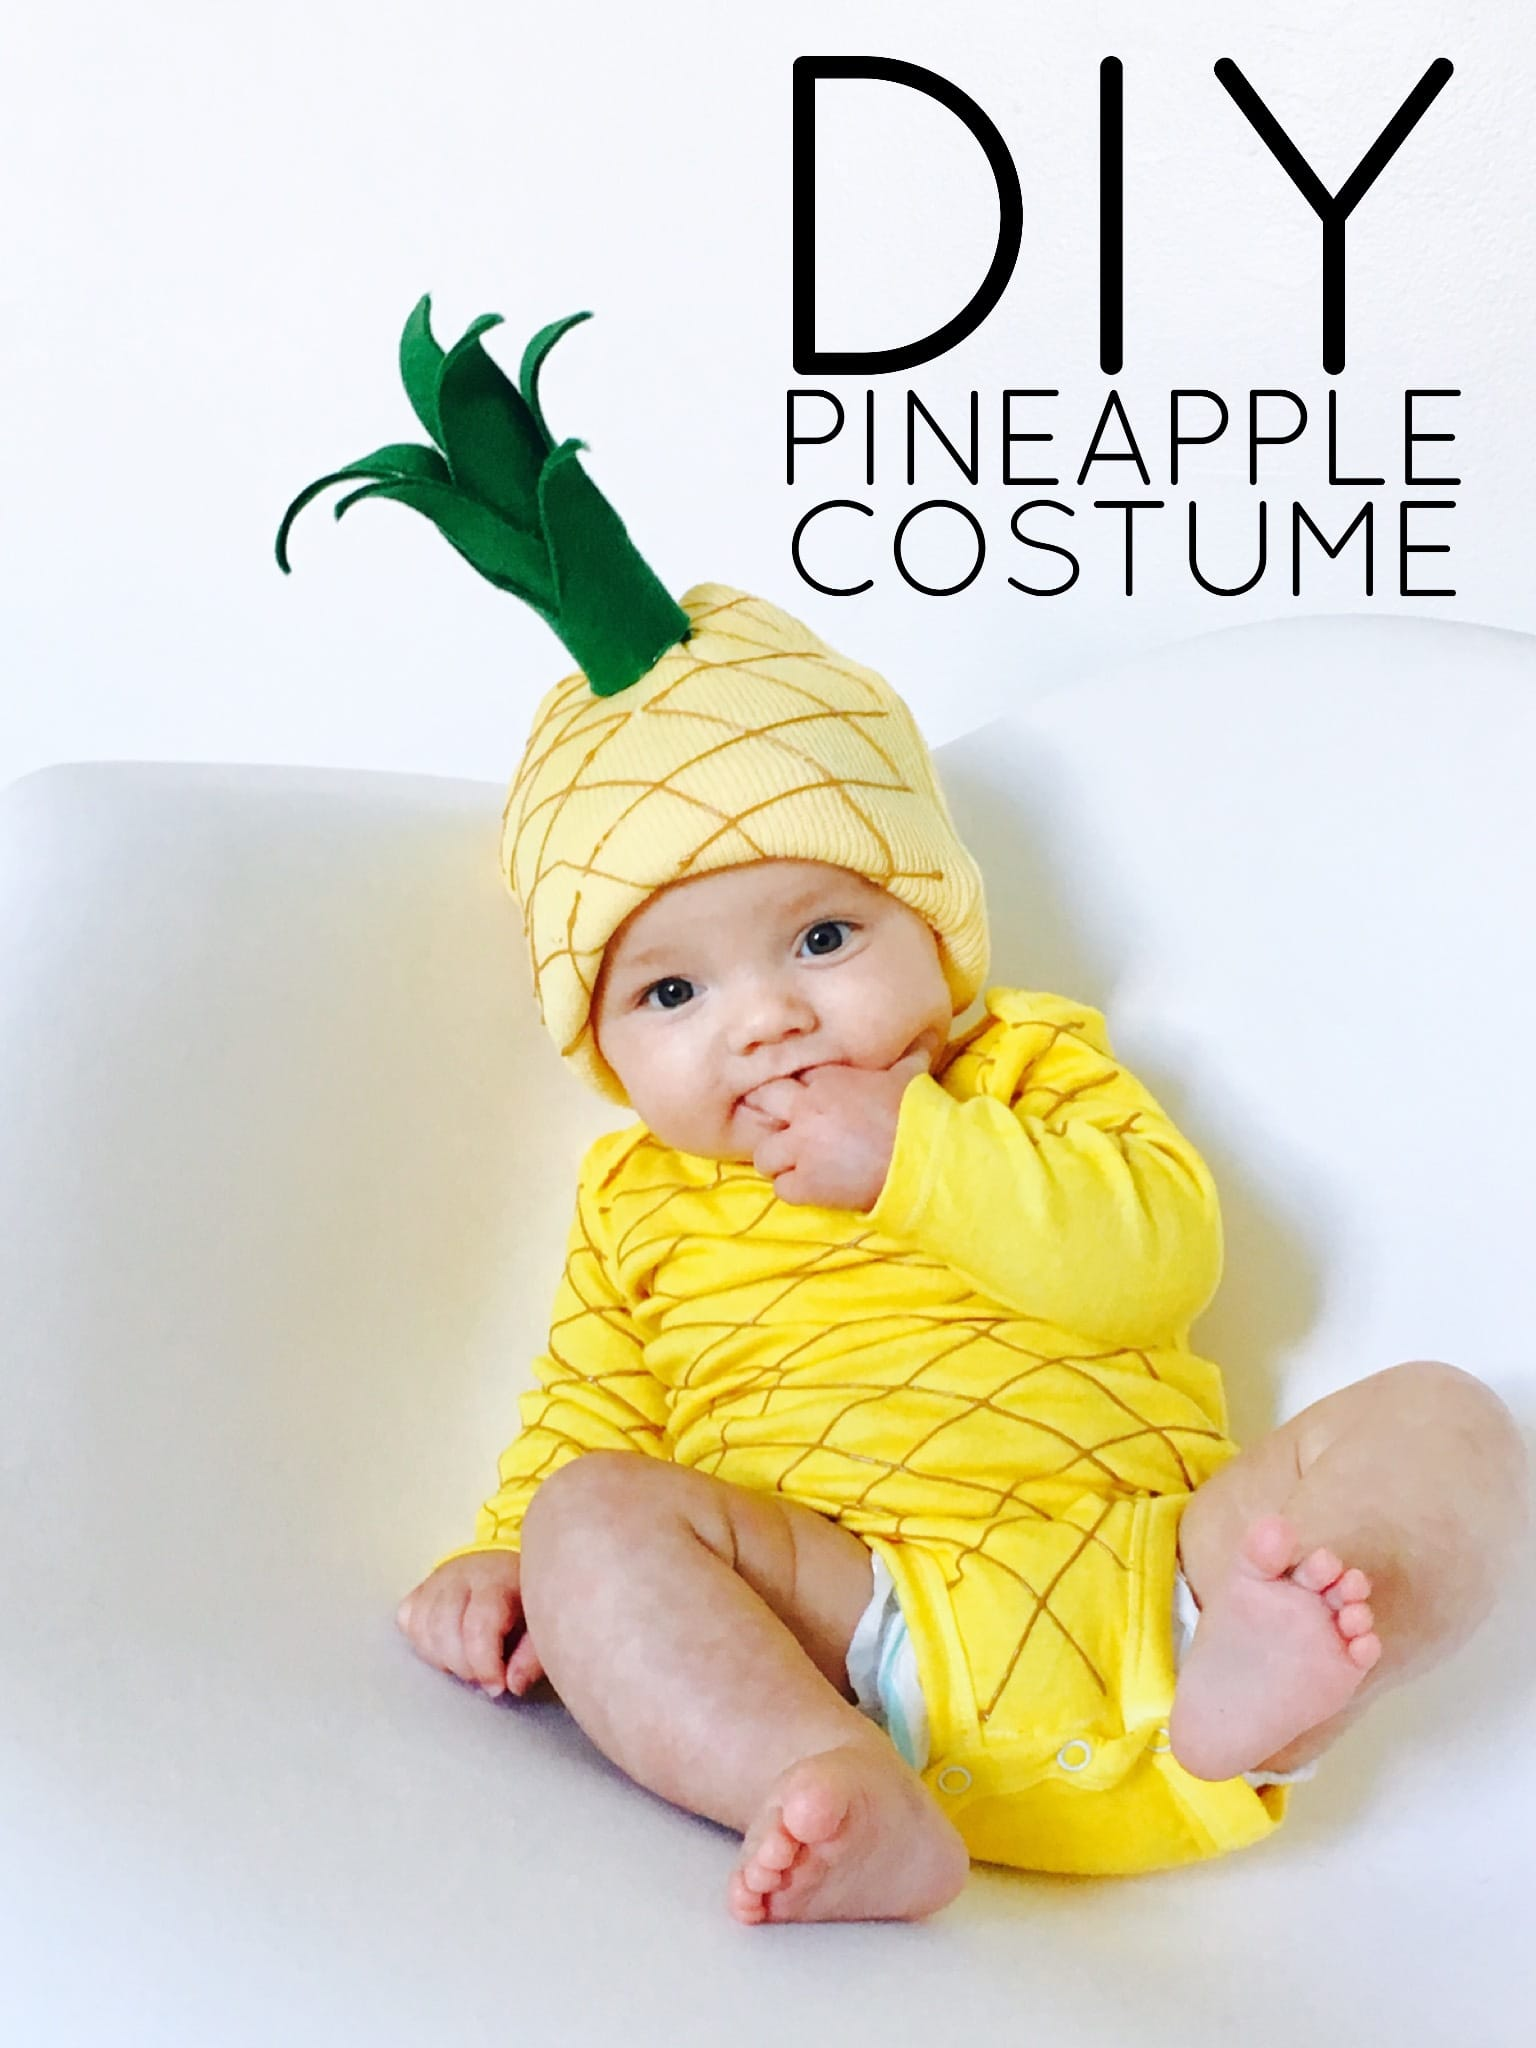 DIY Pineapple Costume - Life on Waller